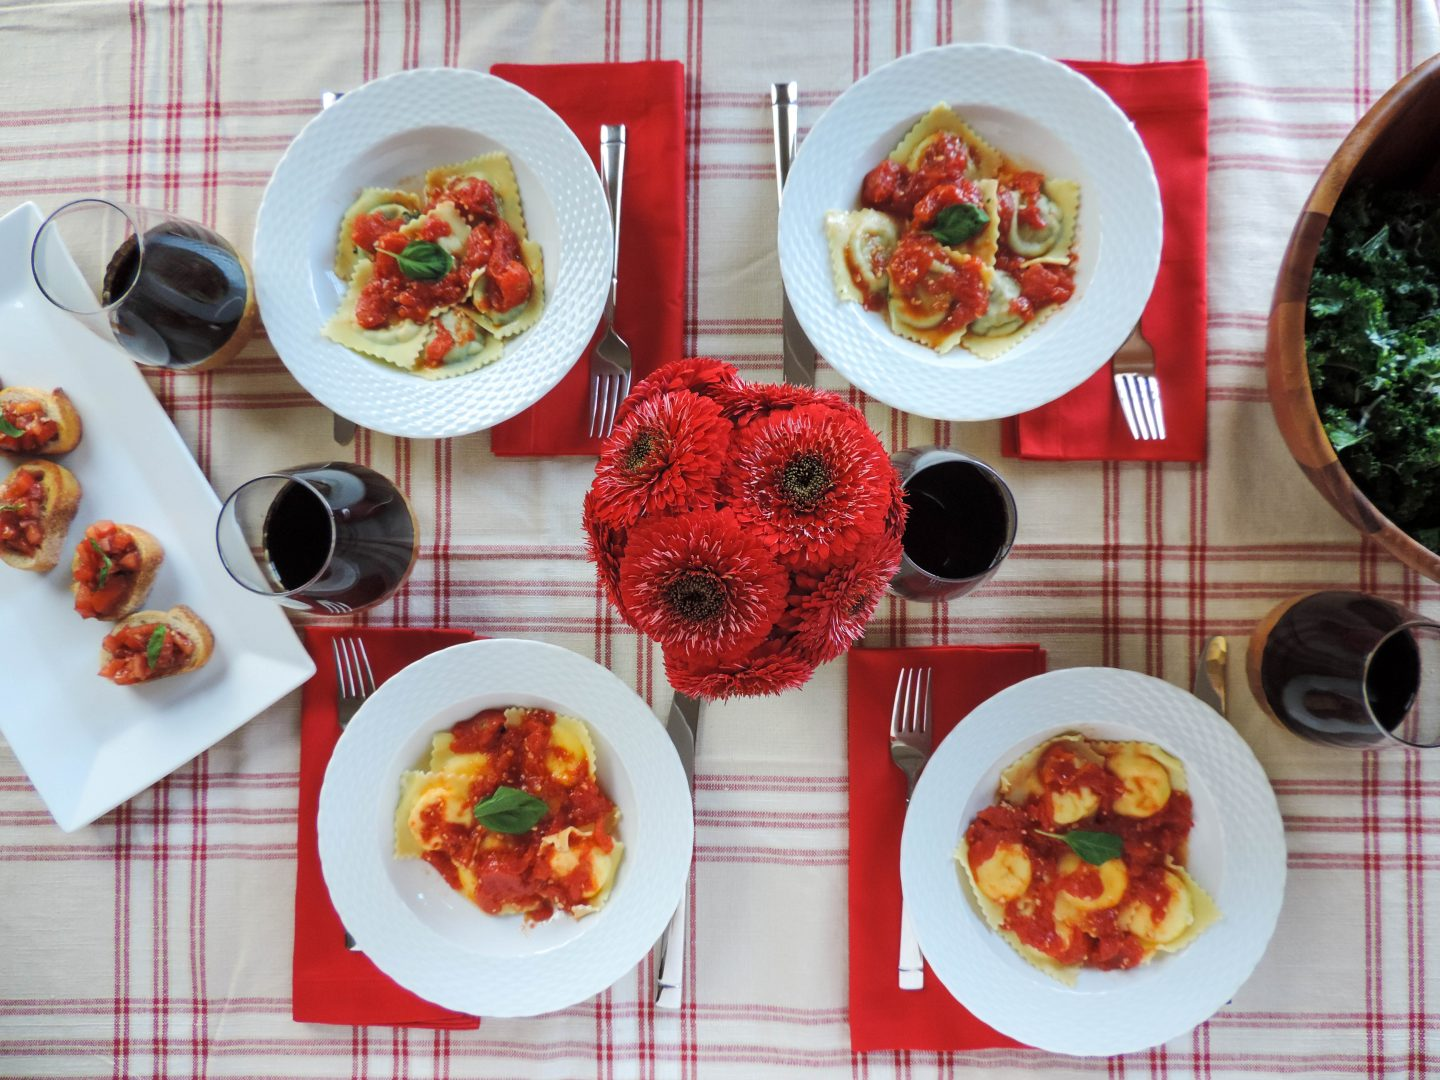 Hostess With The Mostest: Hosting A Stress-Free Italian Dinner Party